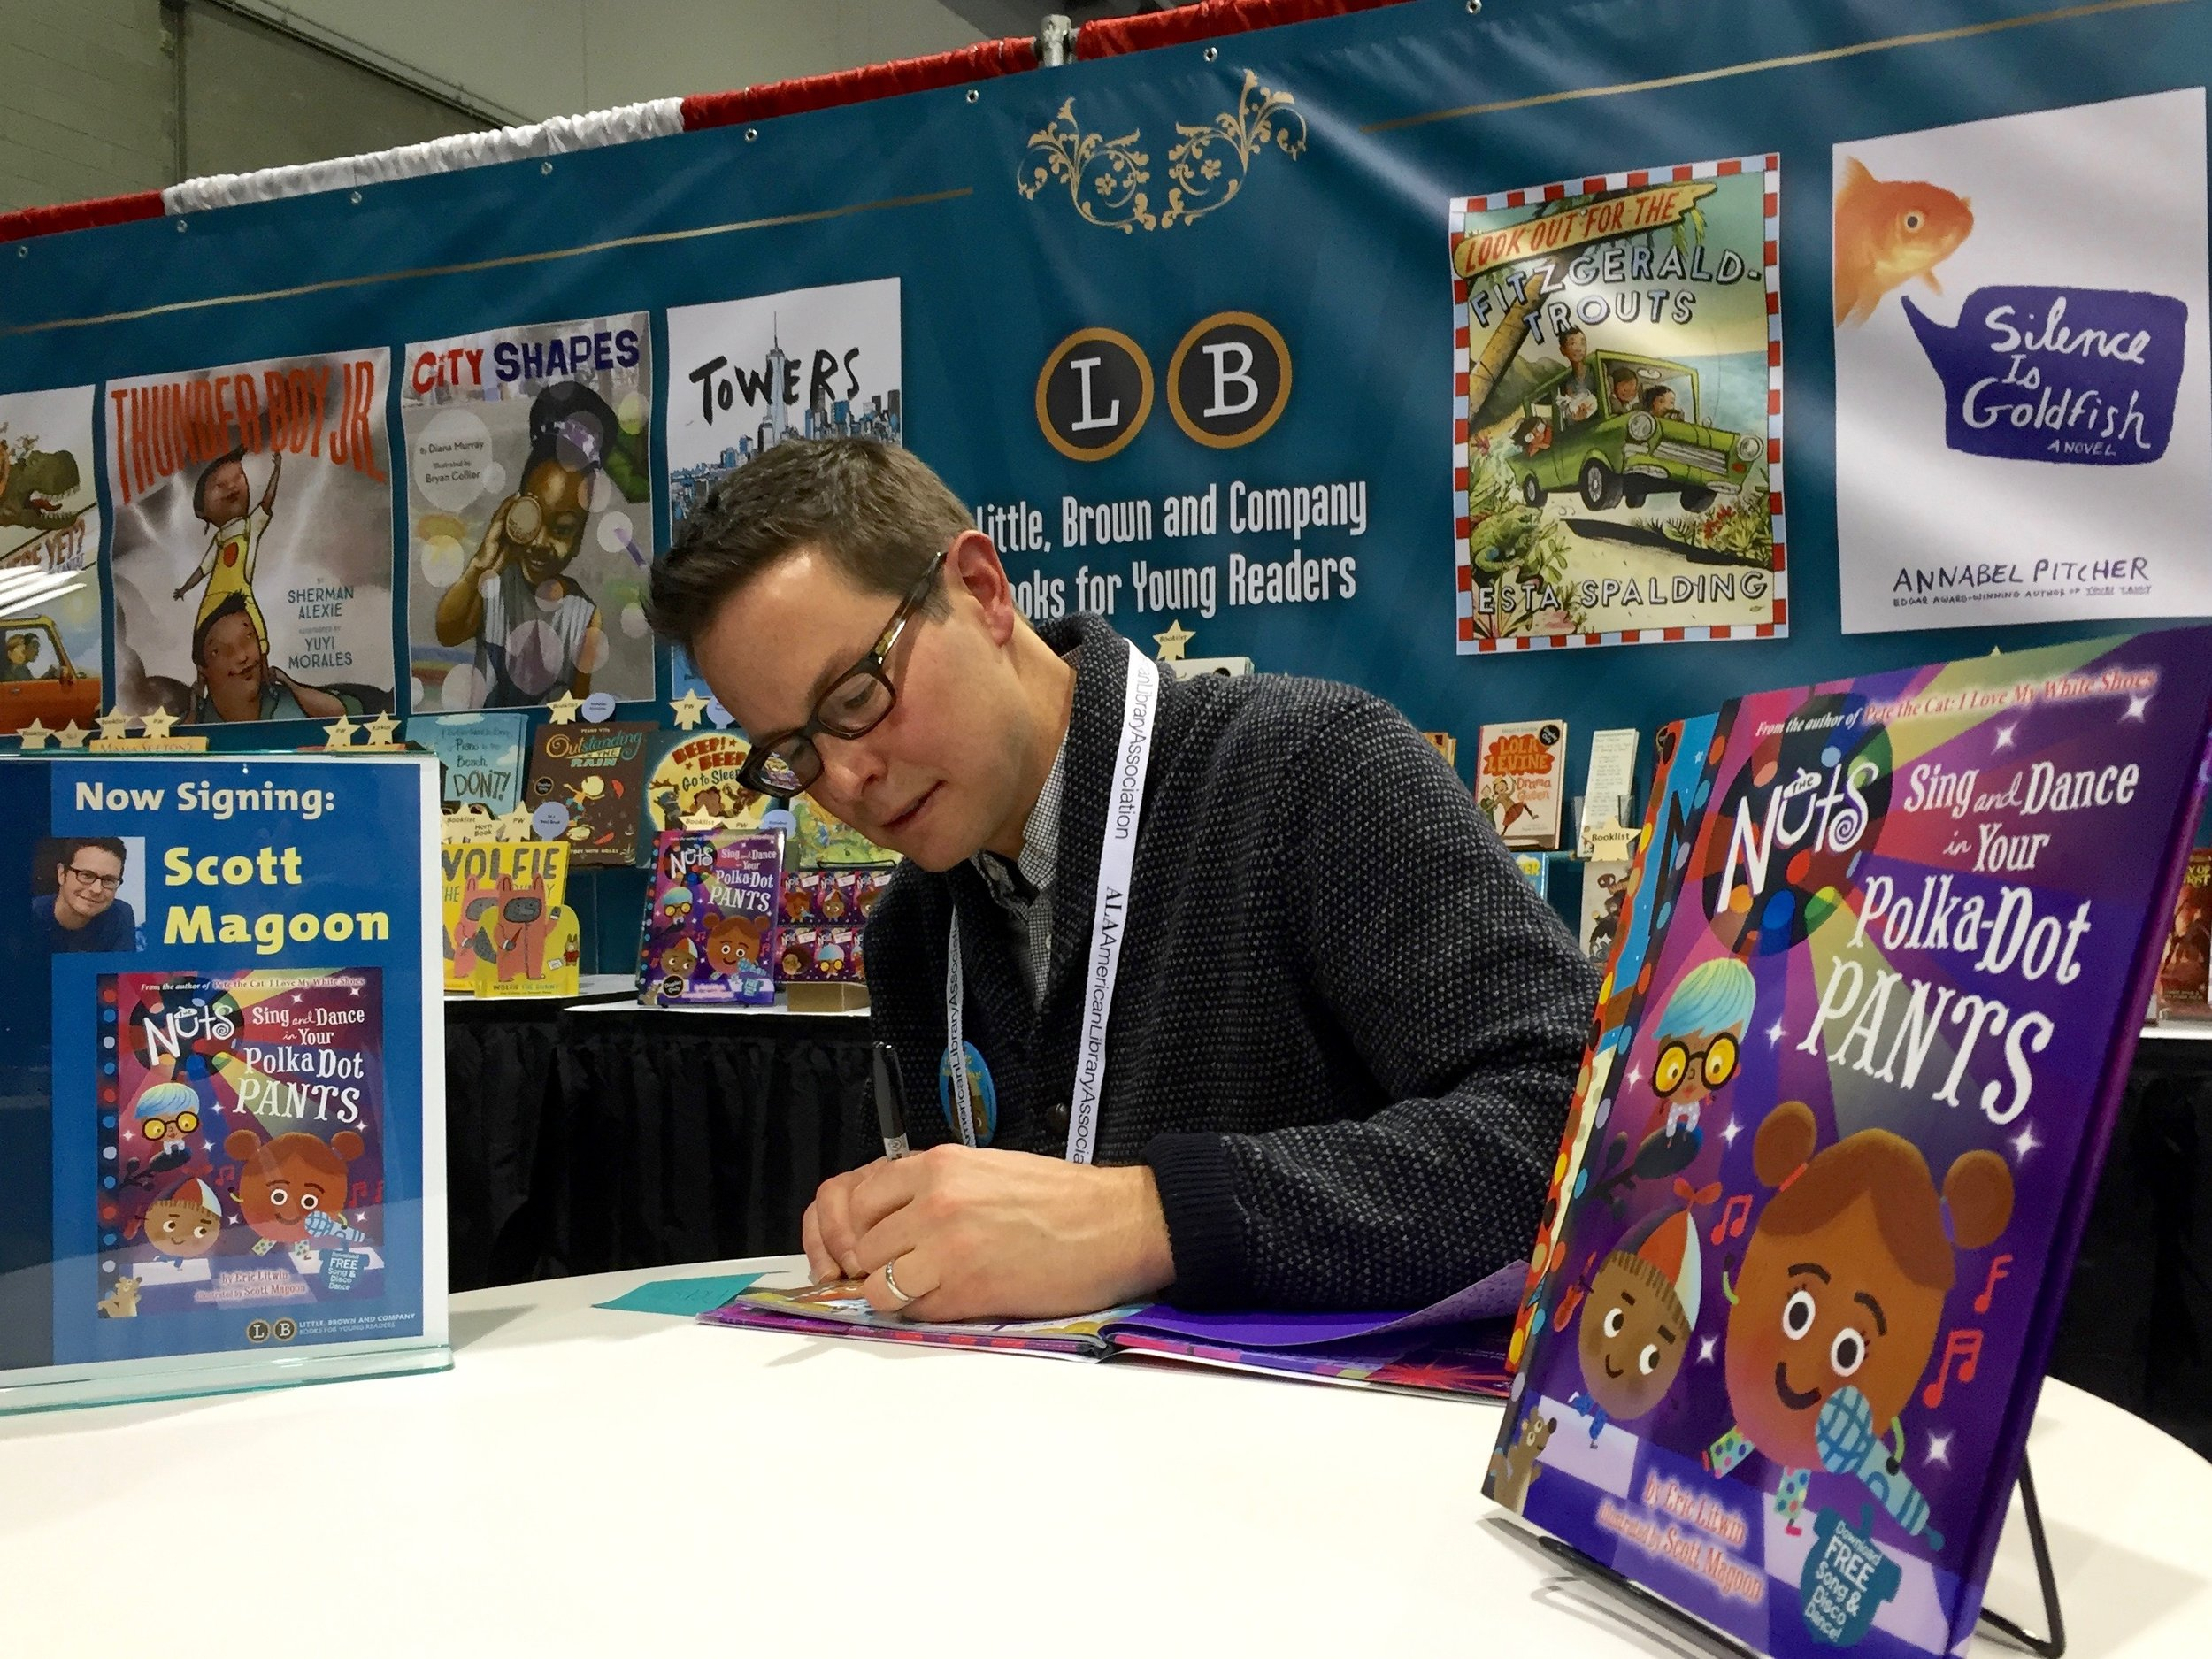 Signing Sing and Dance in Your Polka Dot Pants at ALA Midwinter.